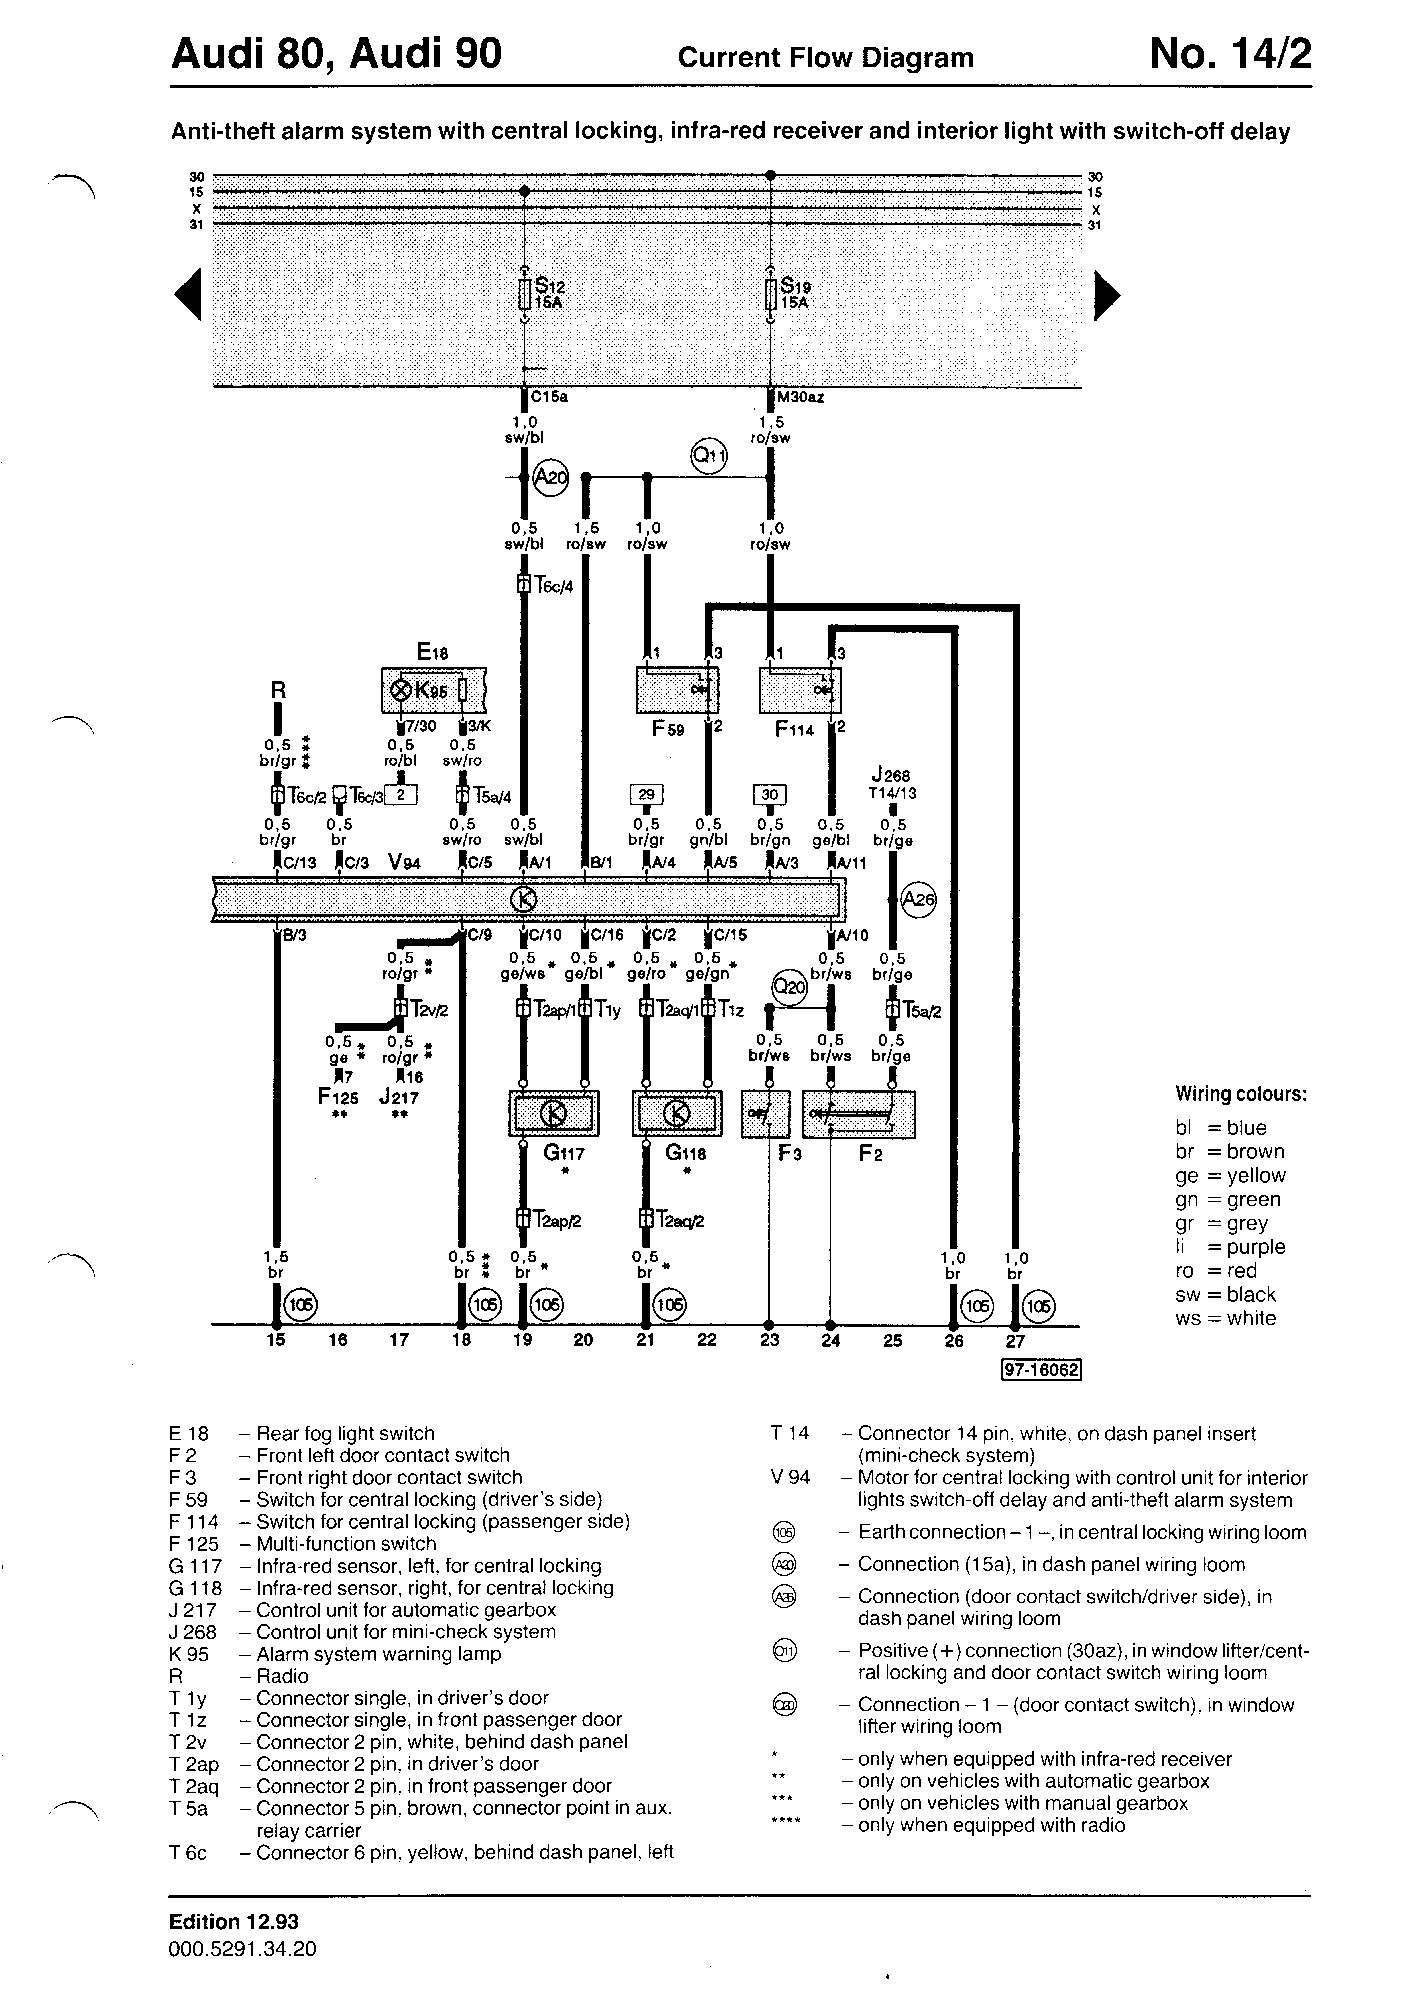 Wiring Diagram Audi 80 B4 | Wiring Diagram on alfa romeo blueprints, alfa romeo spider, alfa romeo steering, alfa romeo transmission, alfa romeo cylinder head, alfa romeo chassis, alfa romeo seats, alfa romeo body, alfa romeo all models, alfa romeo radio wiring, 1995 ford f-250 transmission diagrams, alfa romeo drawings, alfa romeo transaxle, alfa romeo accessories, alfa romeo repair manuals, alfa romeo paint codes, alfa romeo rear axle, alfa romeo engine,